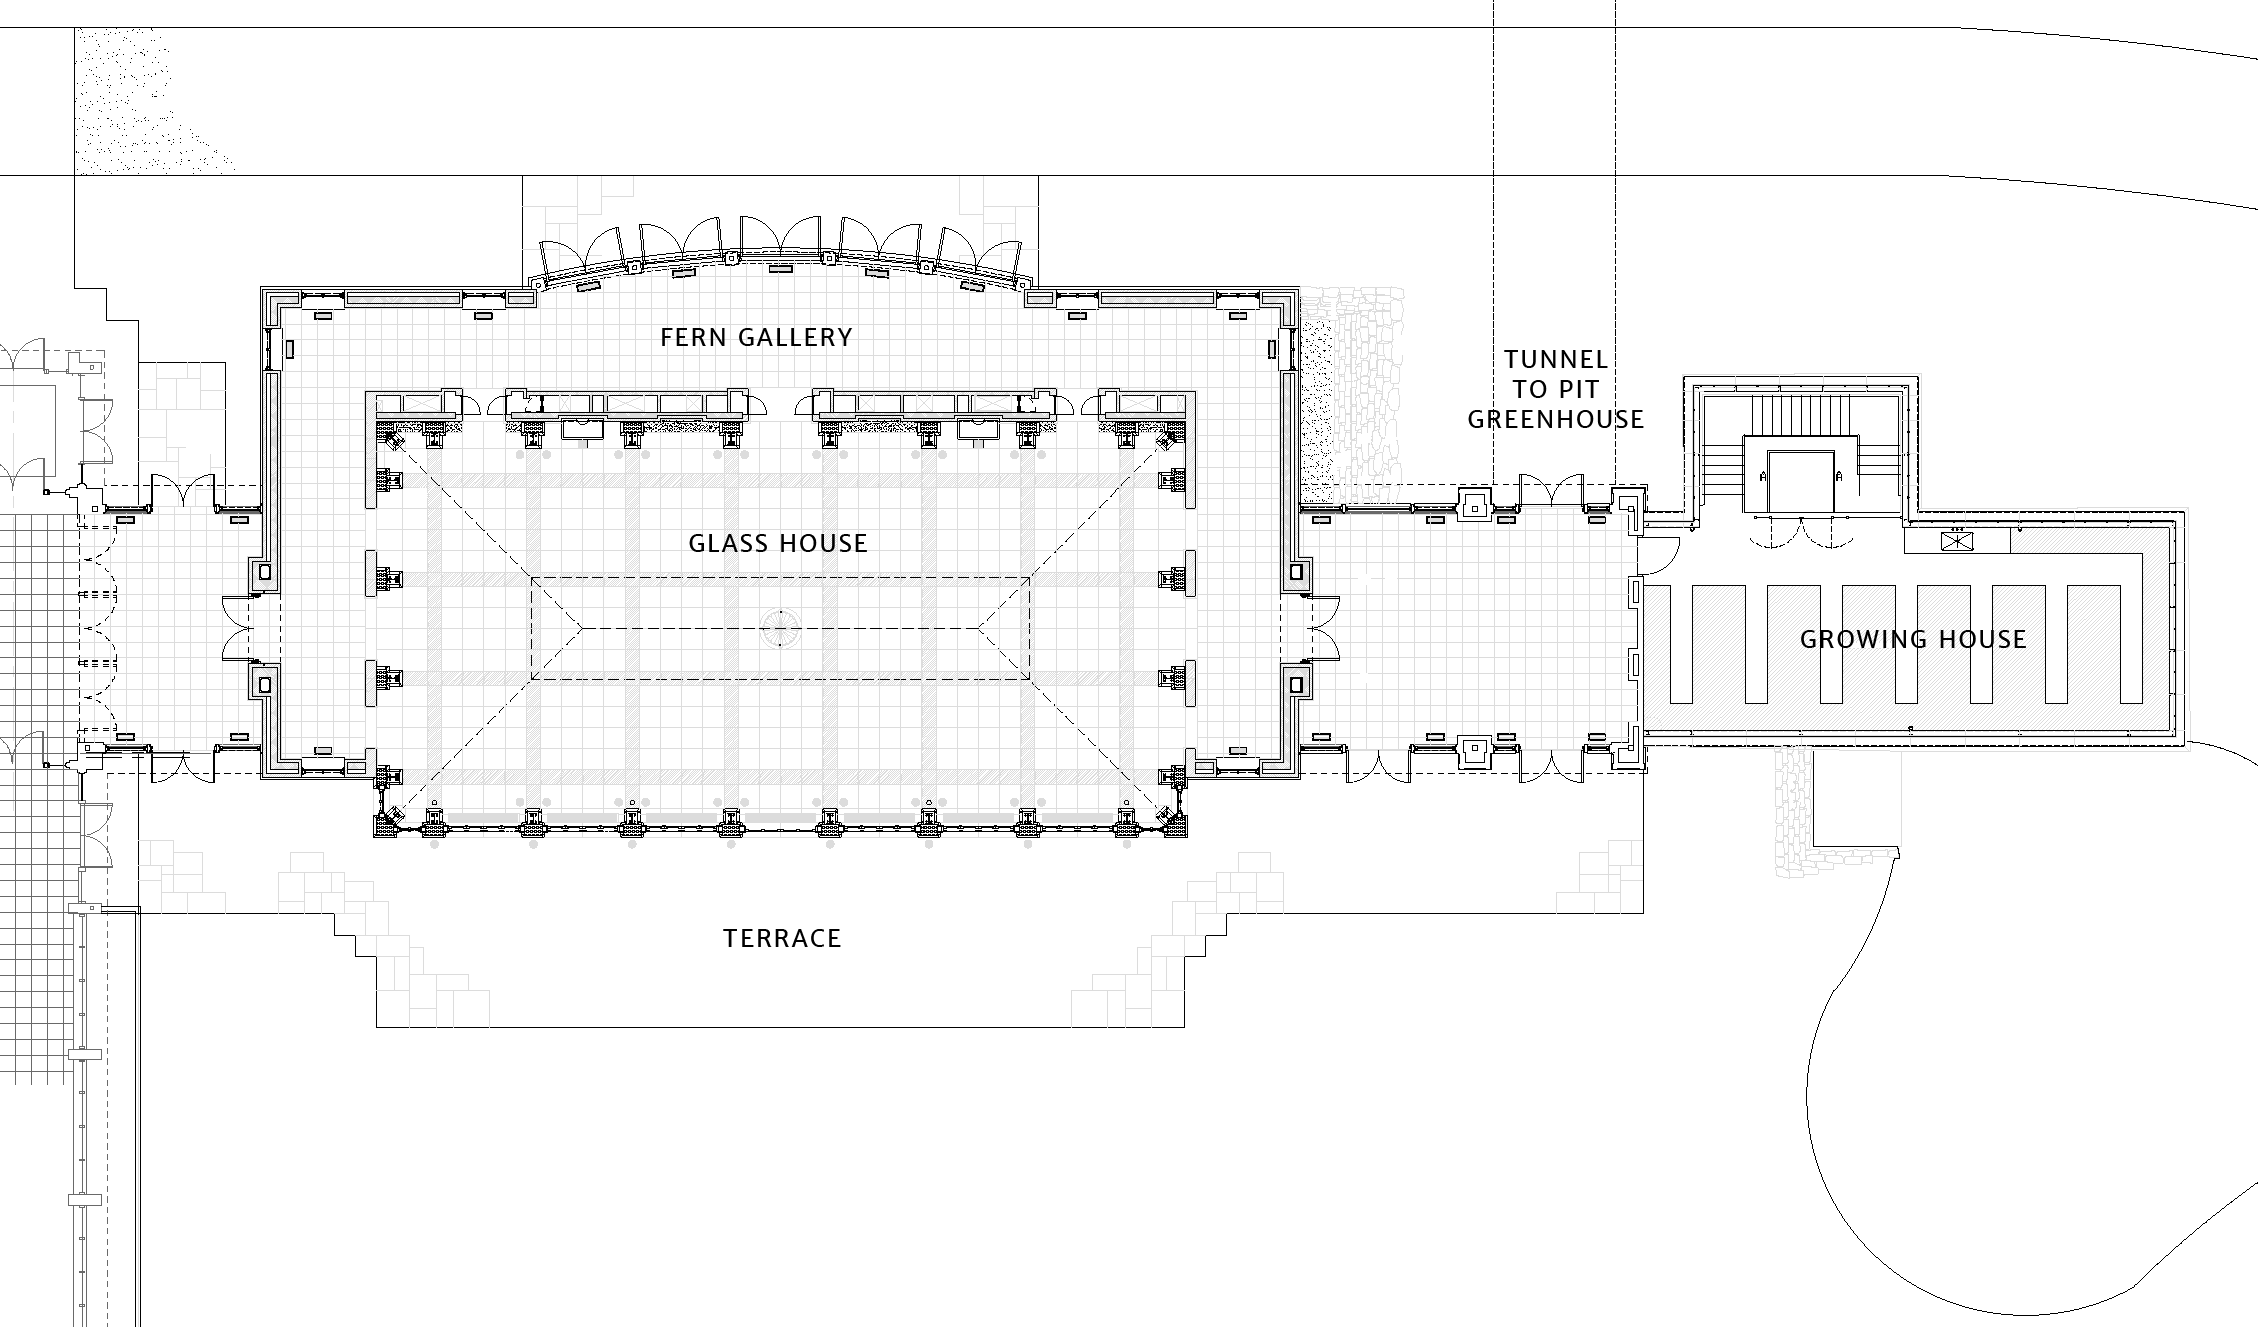 Tower Hill Orangerie architectural drawing